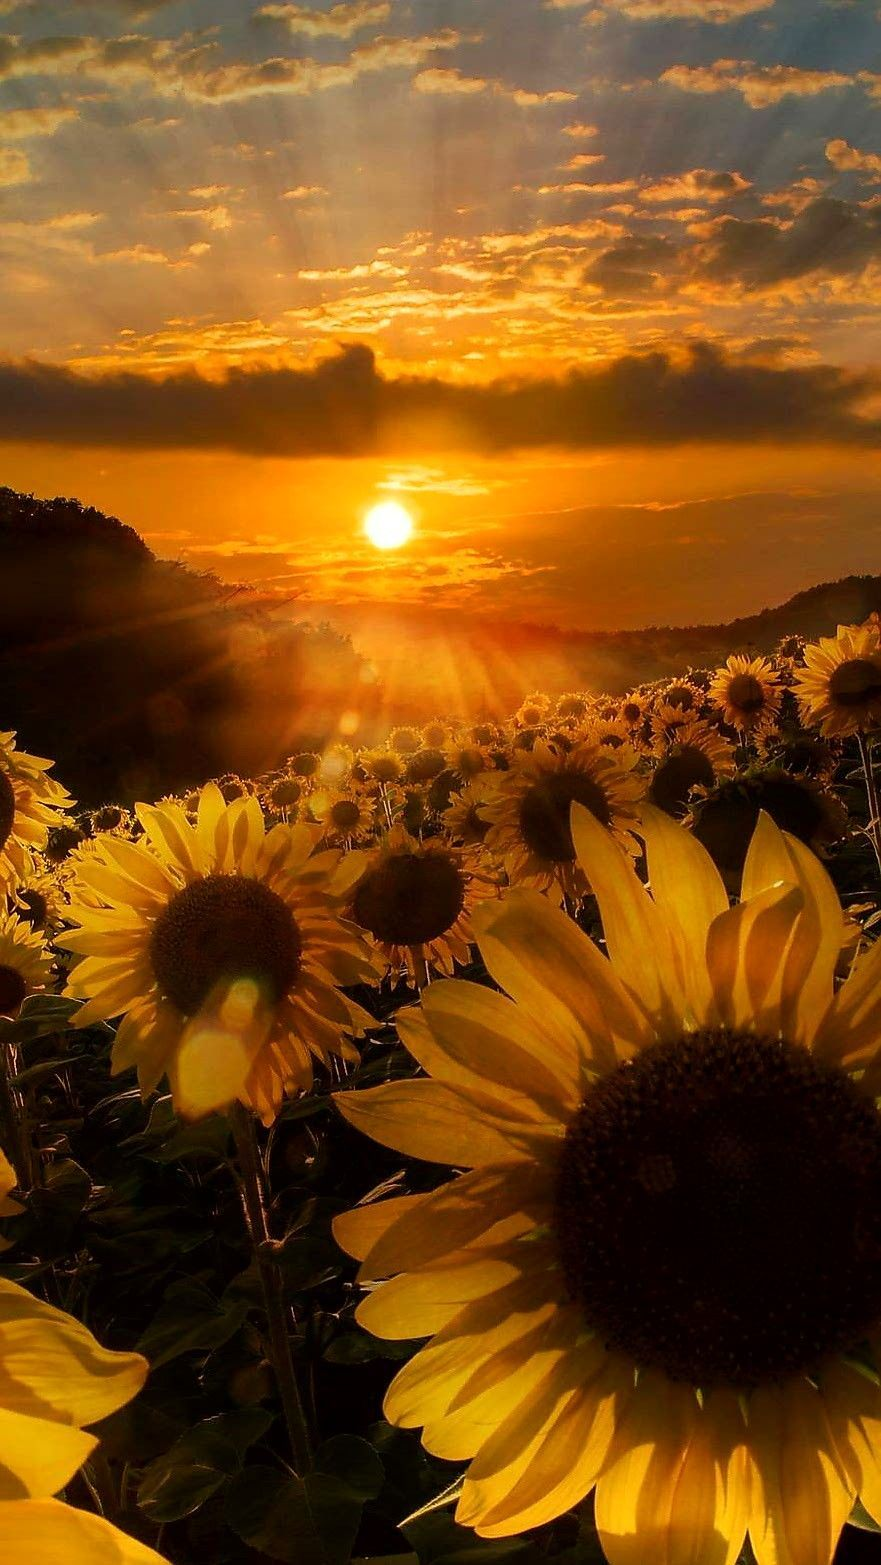 Sunflower wallpaper iphone android background